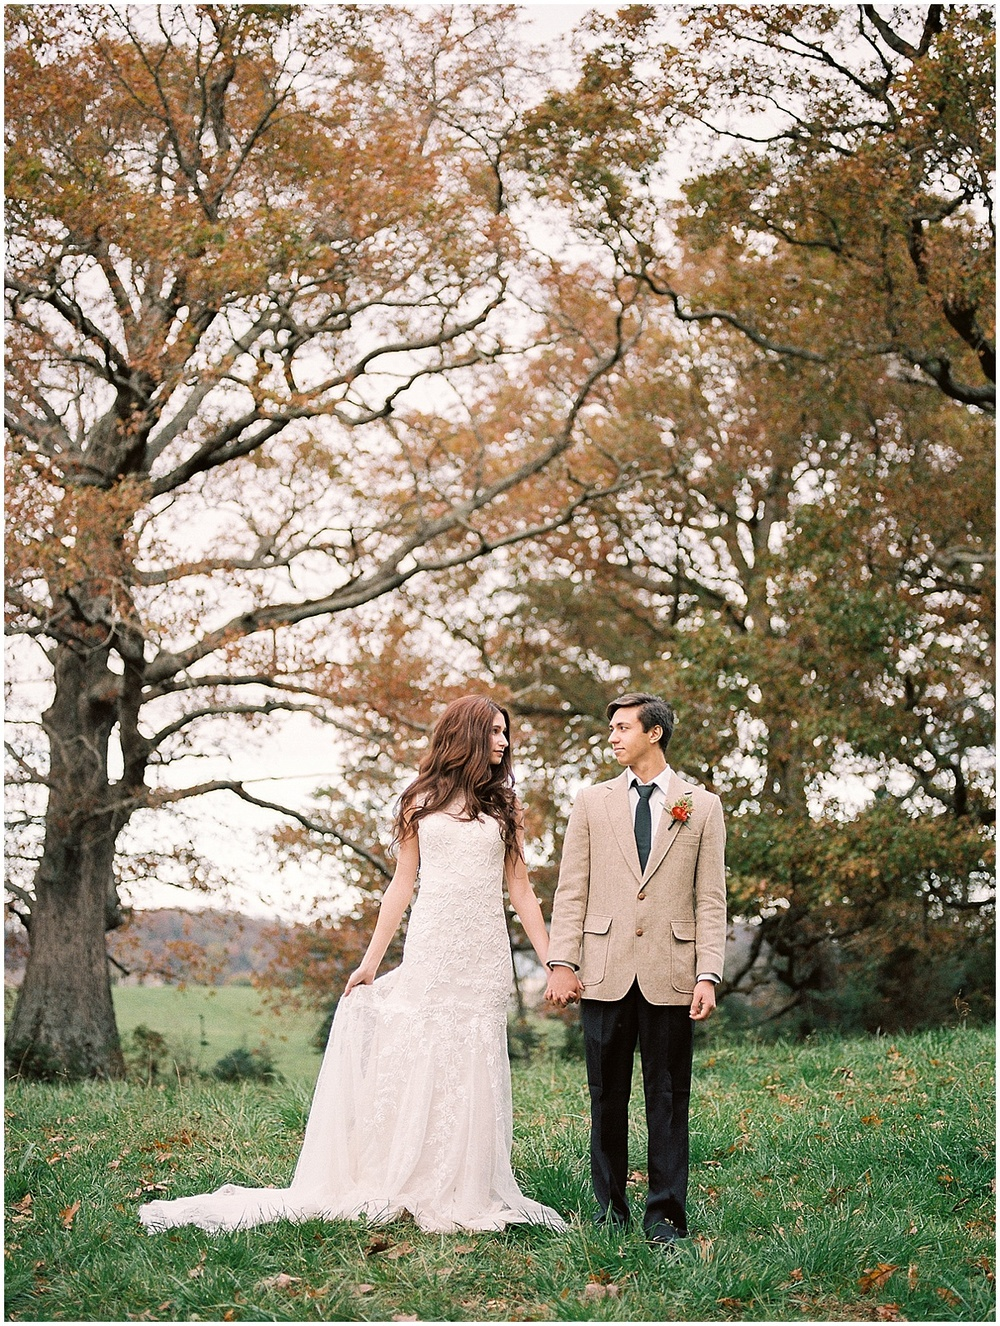 Abigail_Malone_Fall_Wedding_Knoxville_Film_Portra_400_Kodak_Mountain_Views_Abby_Elizabeth-56.jpg